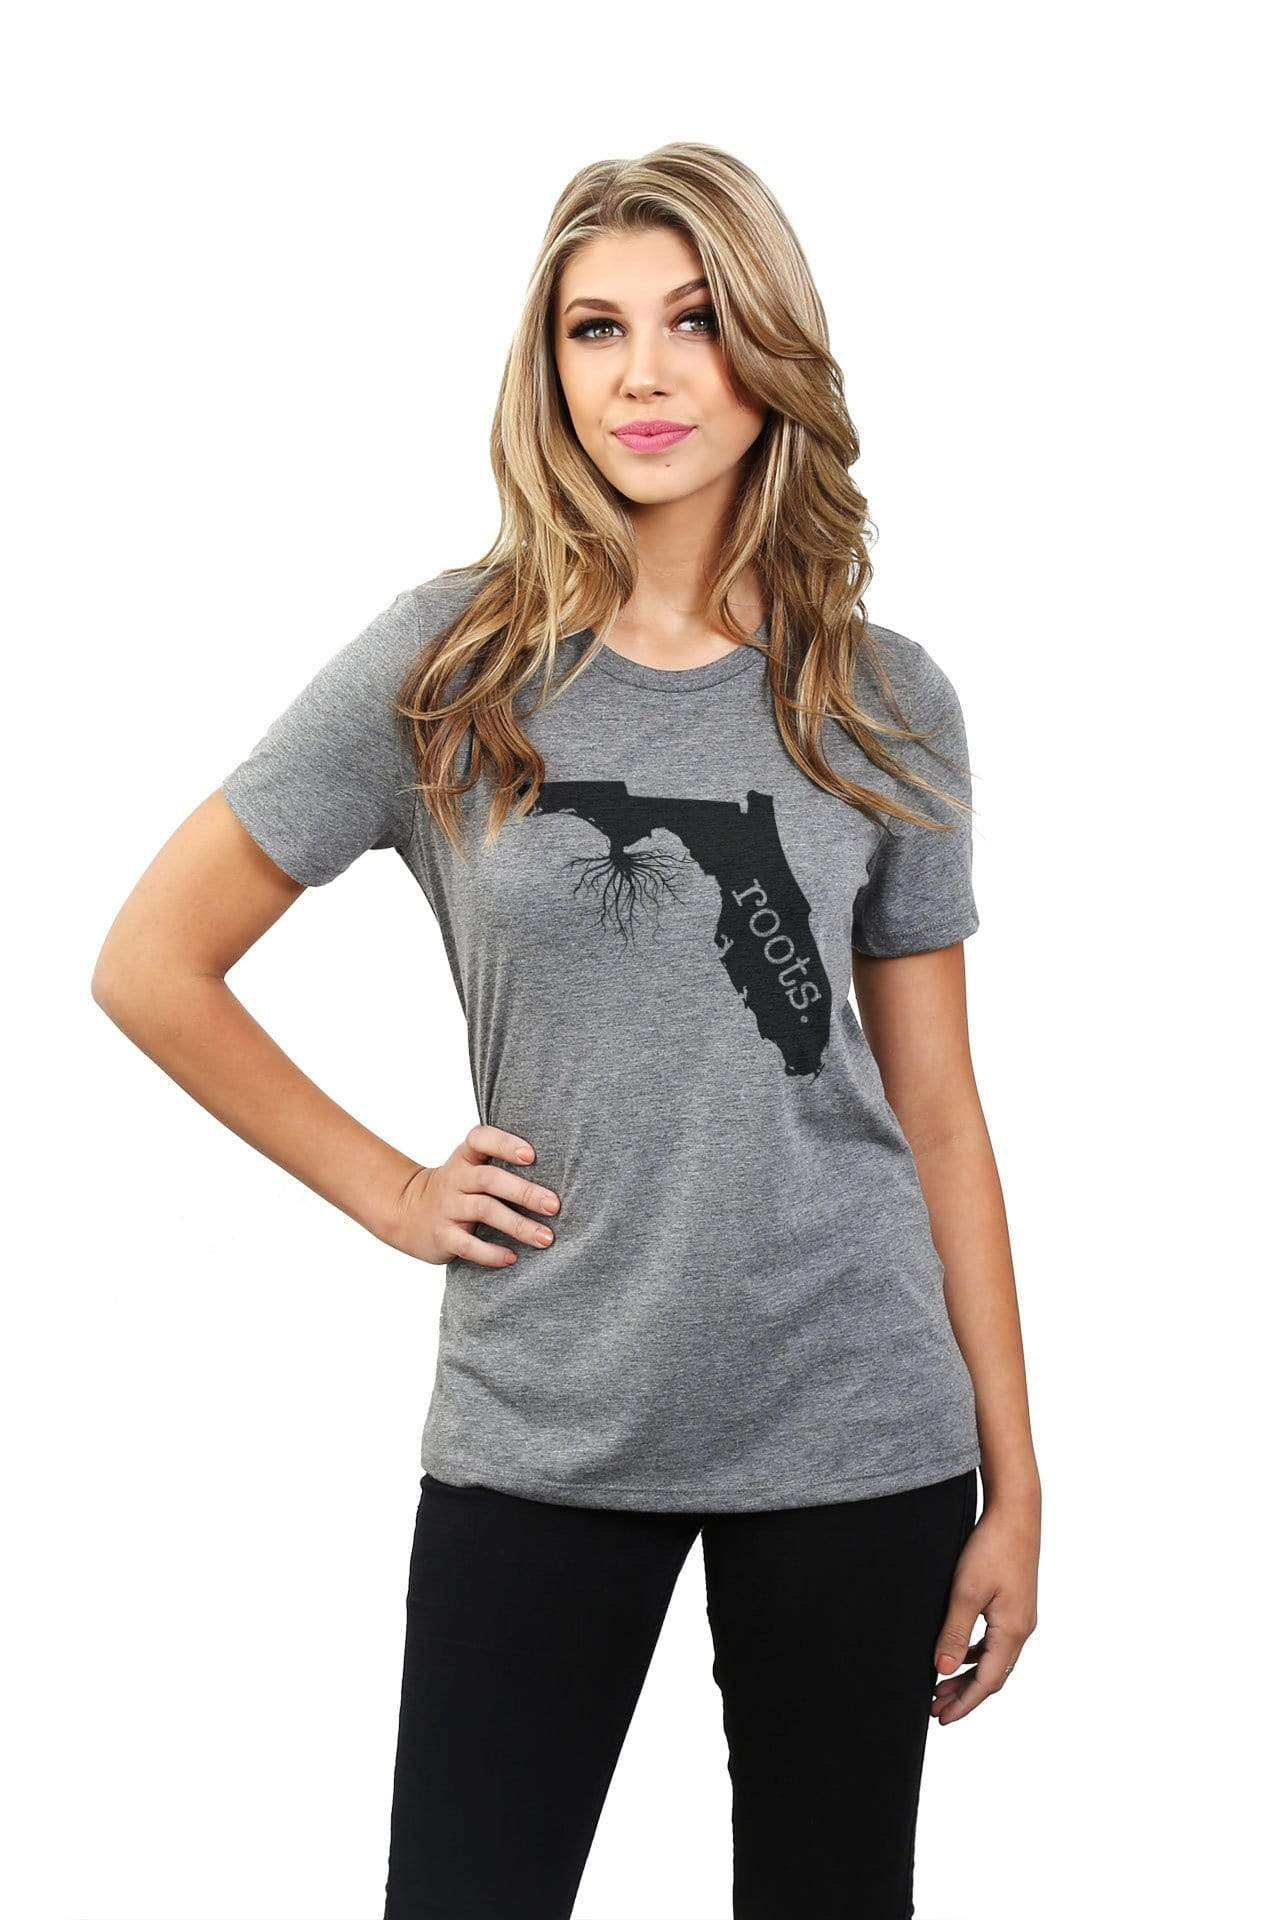 Home Roots State Florida FL Women Heather Grey Relaxed Crew T-Shirt Tee Top